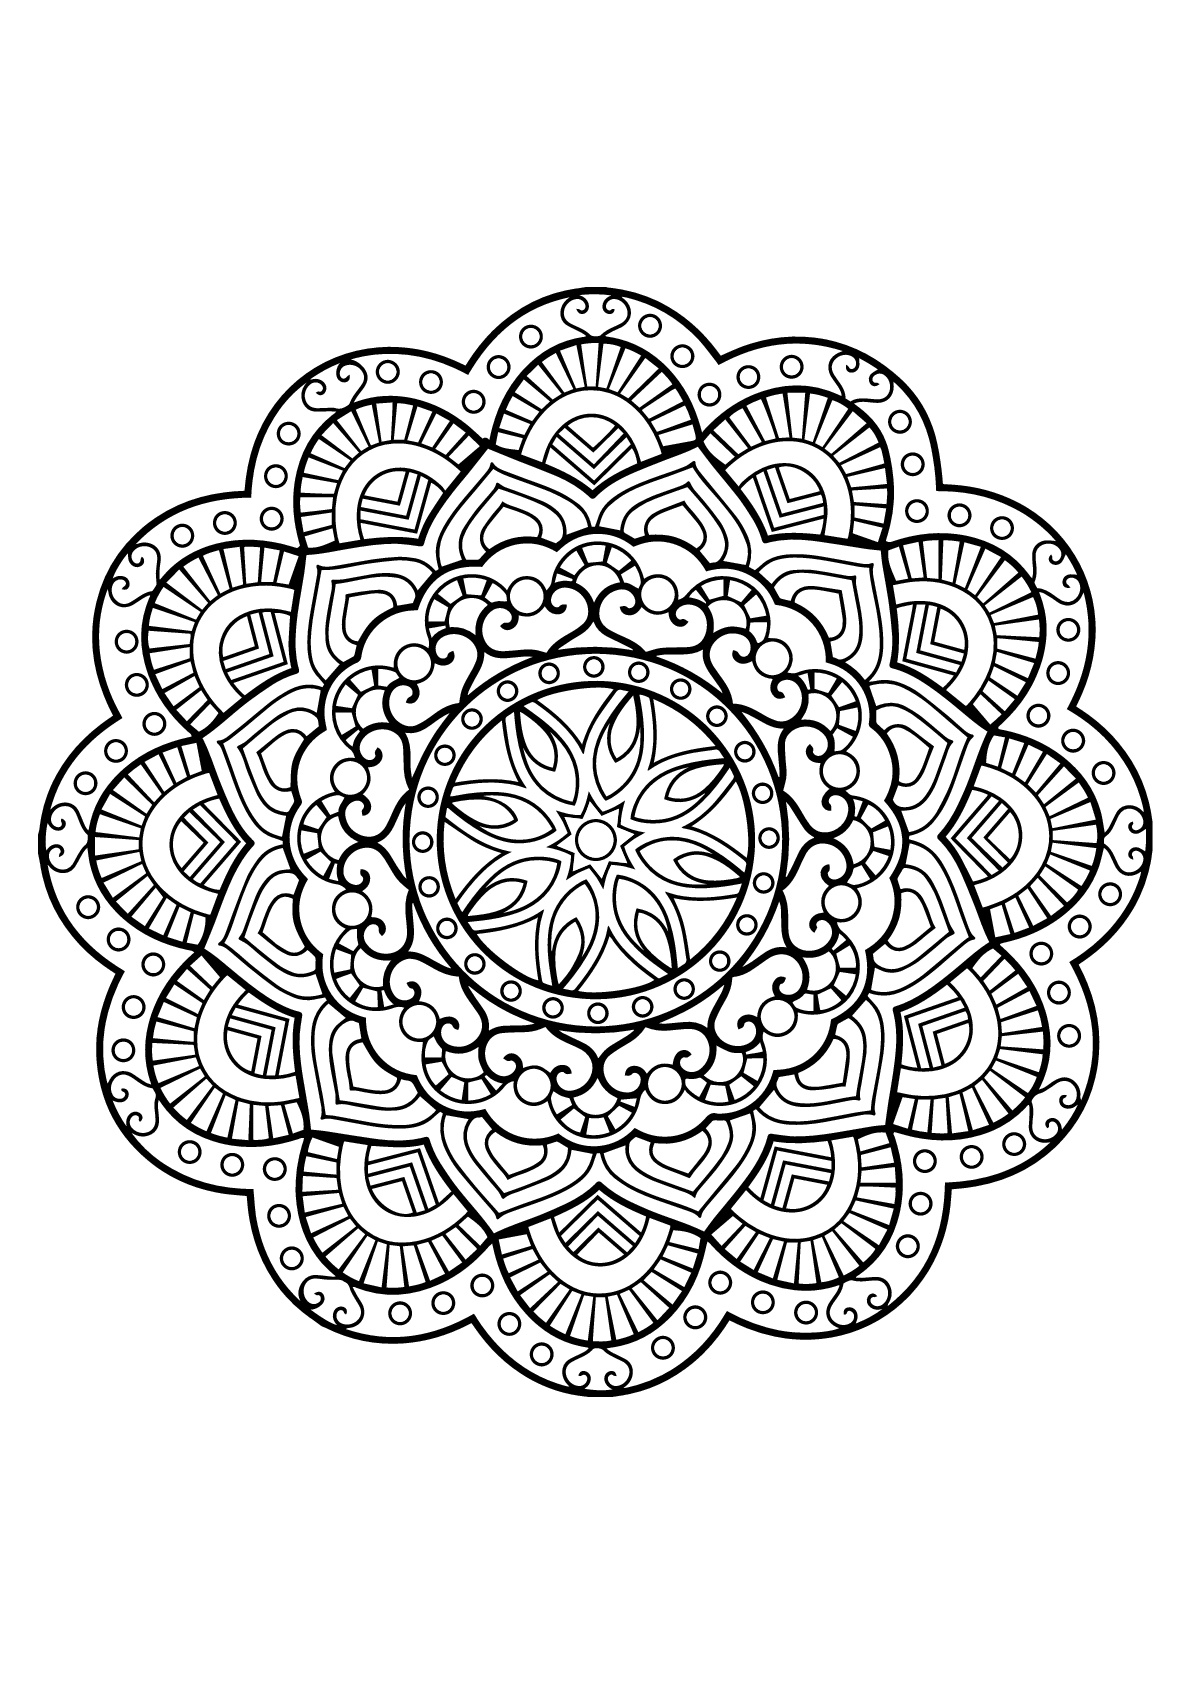 free printable mandalas to color for adults get this free mandala coloring pages for adults 42893 color mandalas printable free for adults to